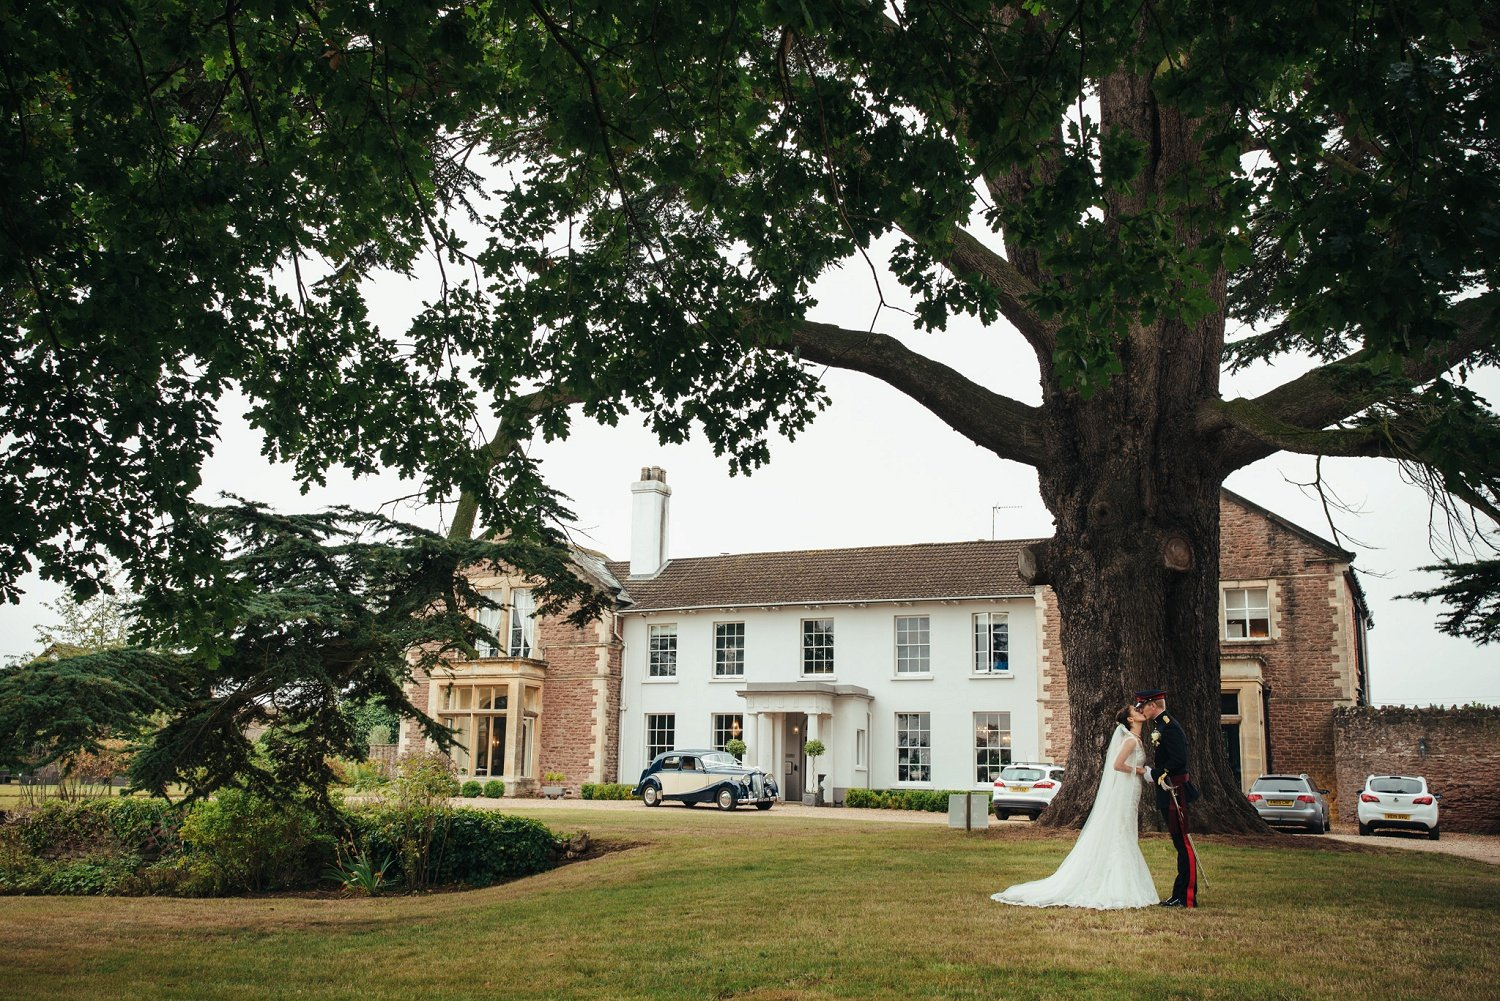 Wedding photos at Glewstone Court in Herefordshire